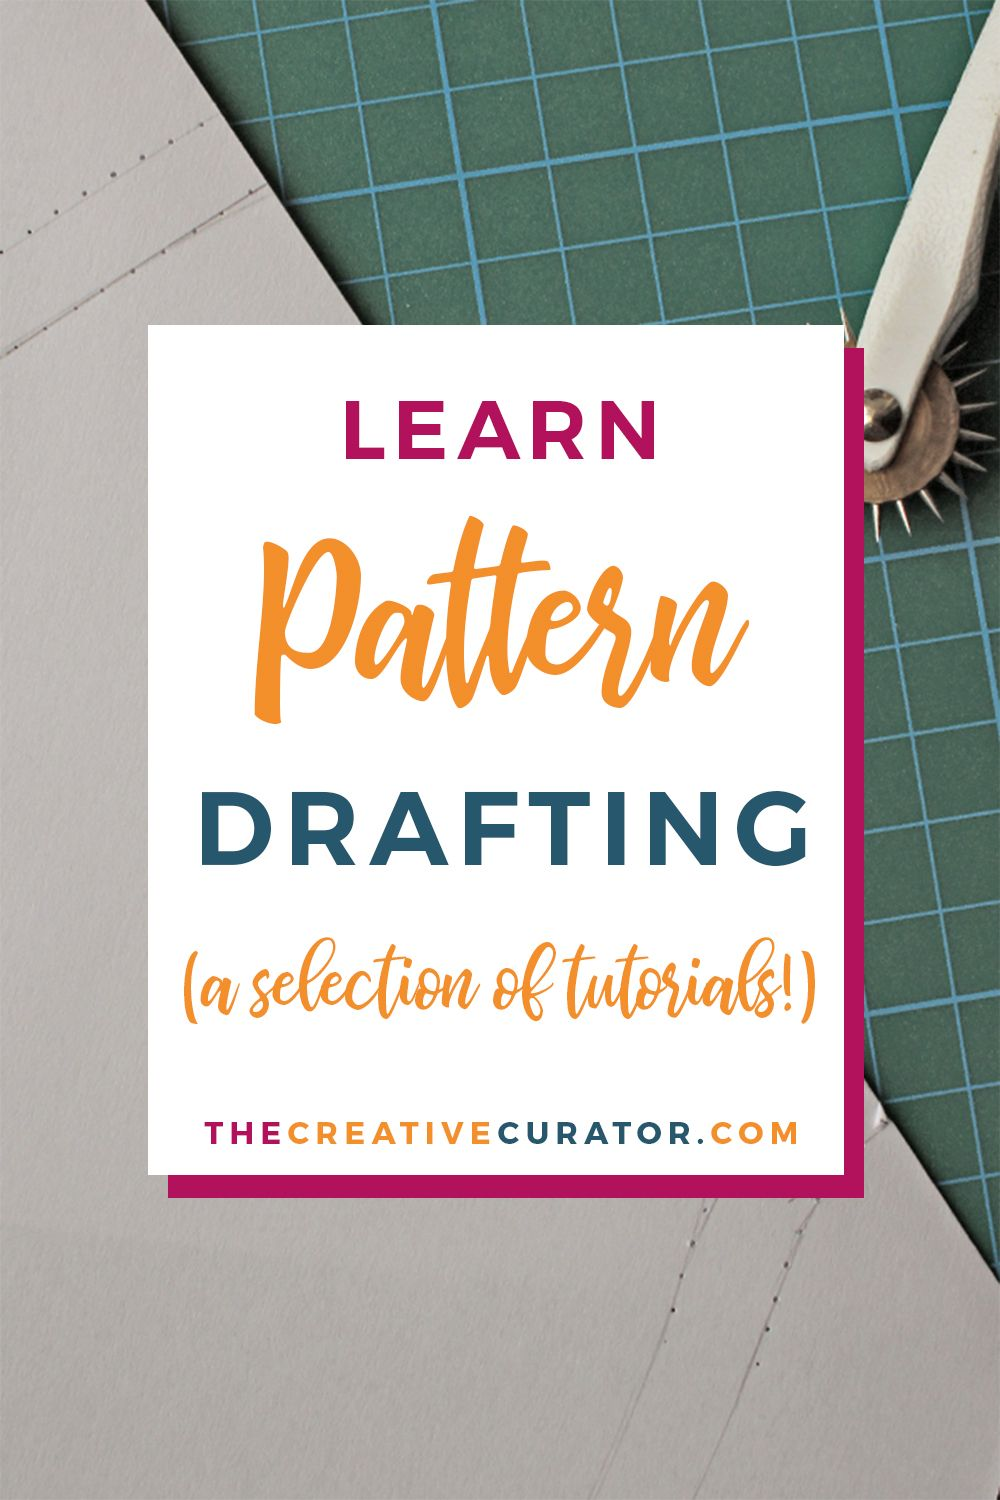 FREE Pattern Drafting Tutorials!